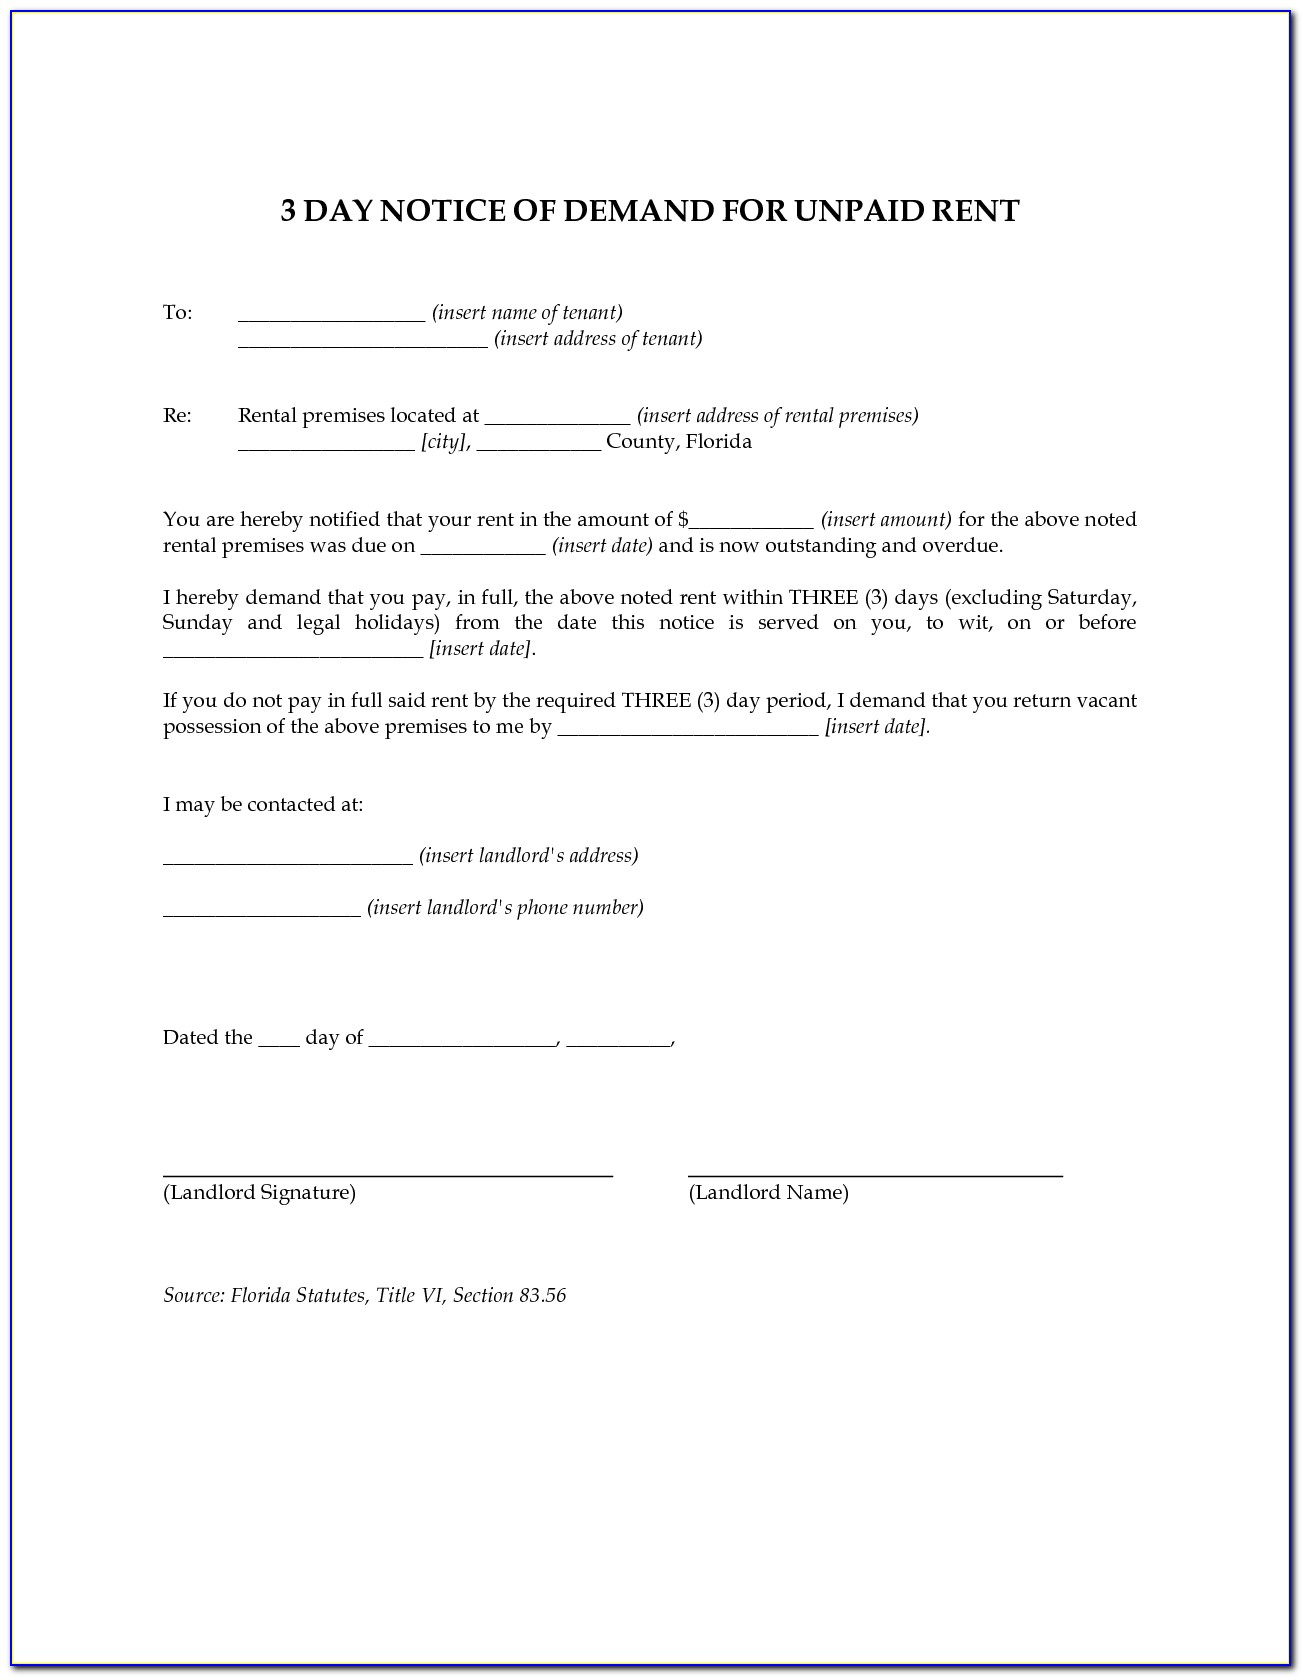 3 Day Eviction Notice Form Palm Beach County Florida